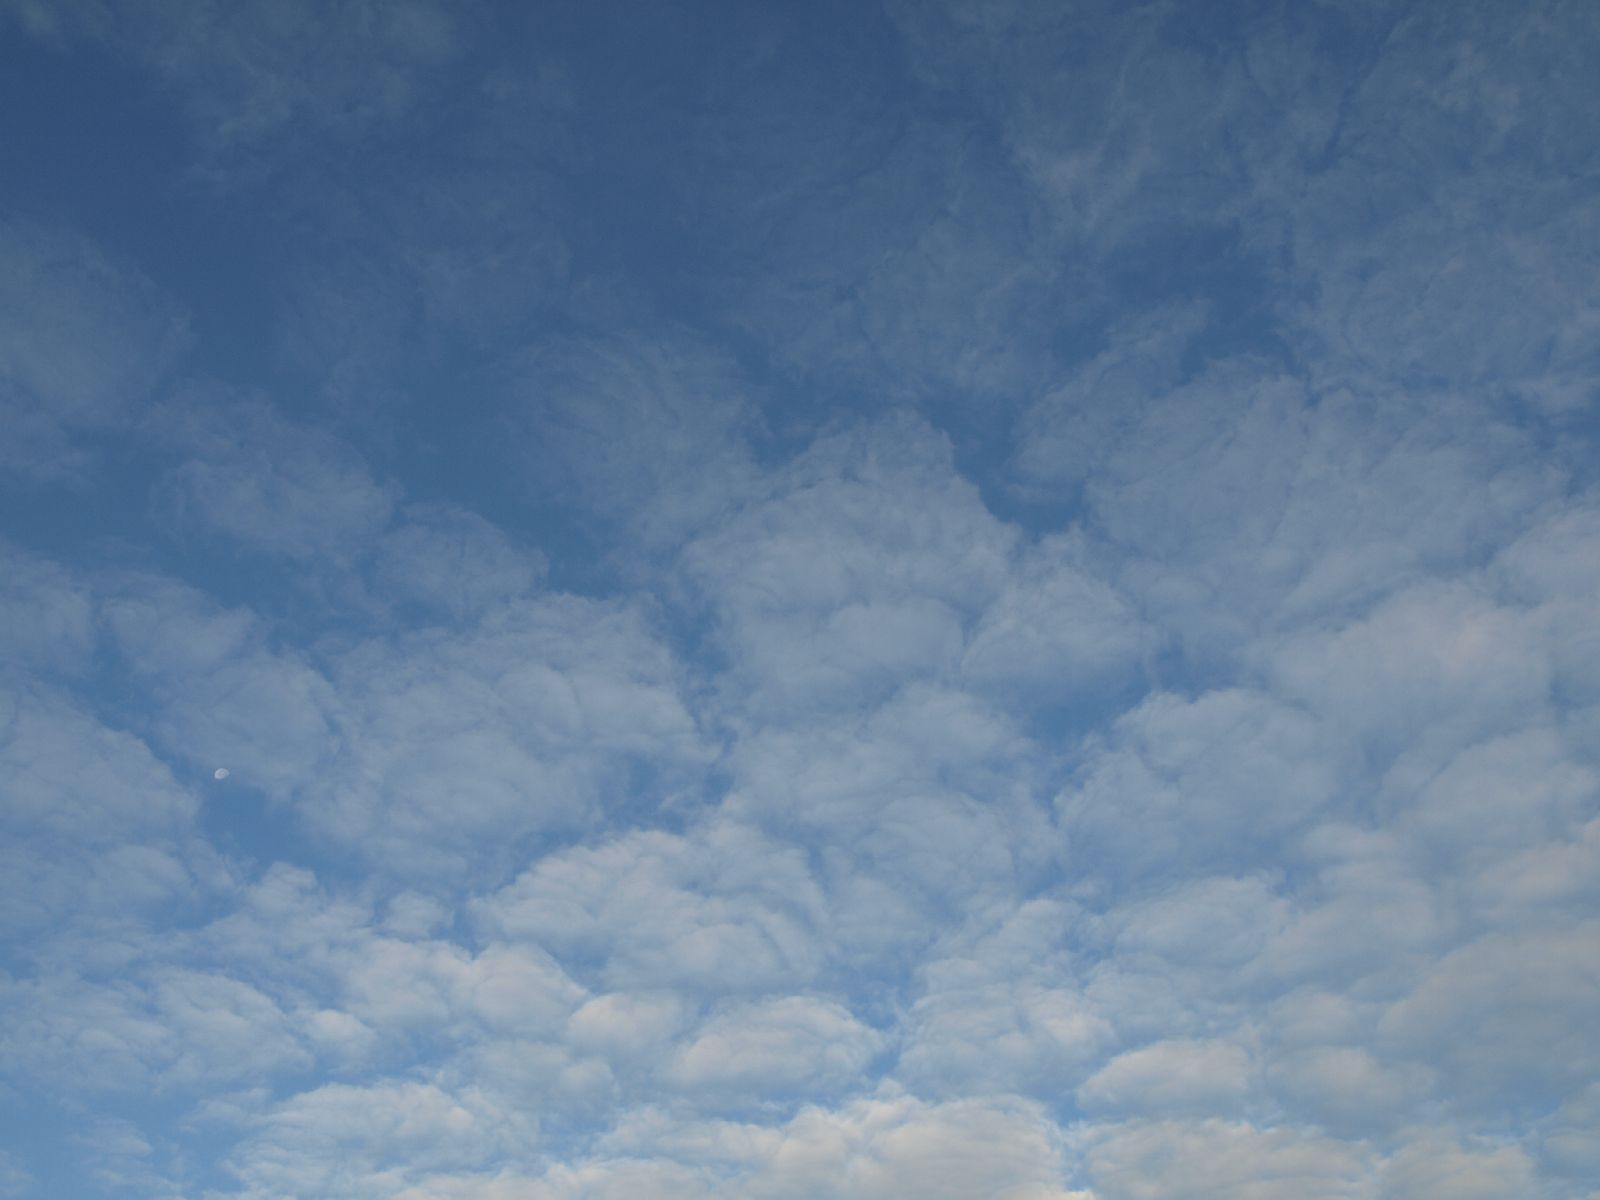 Sky_Clouds_Photo_Texture_A_P8214562